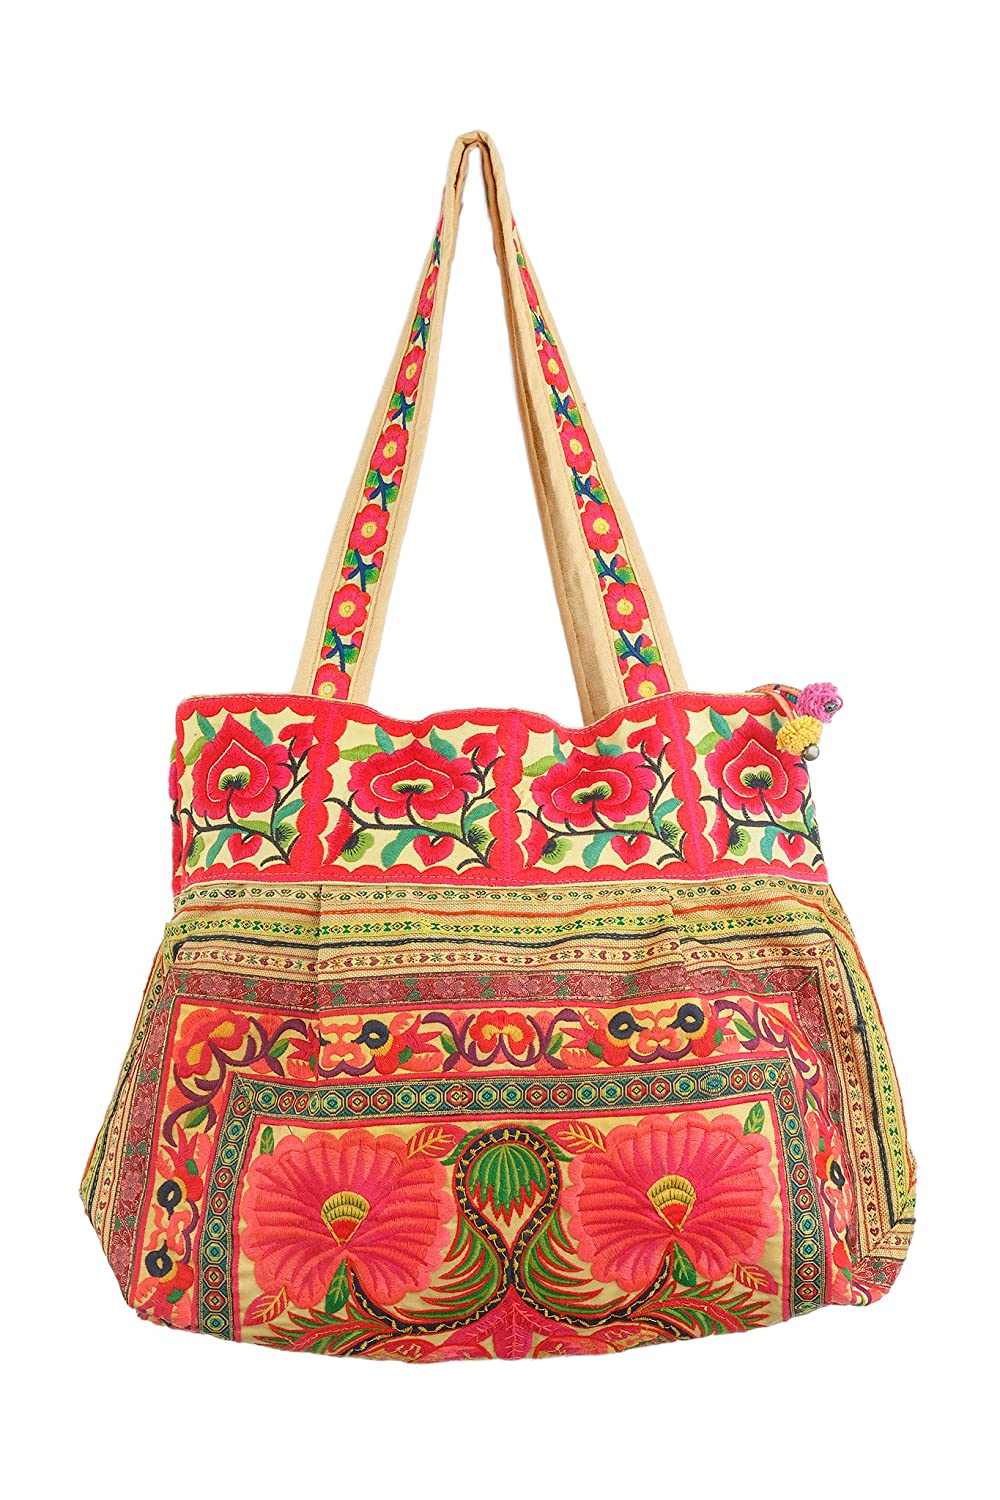 Changnoi Orange Flowers Hmong Tote Bag Hill Tribe Embroidered Fabric Purse Large Size